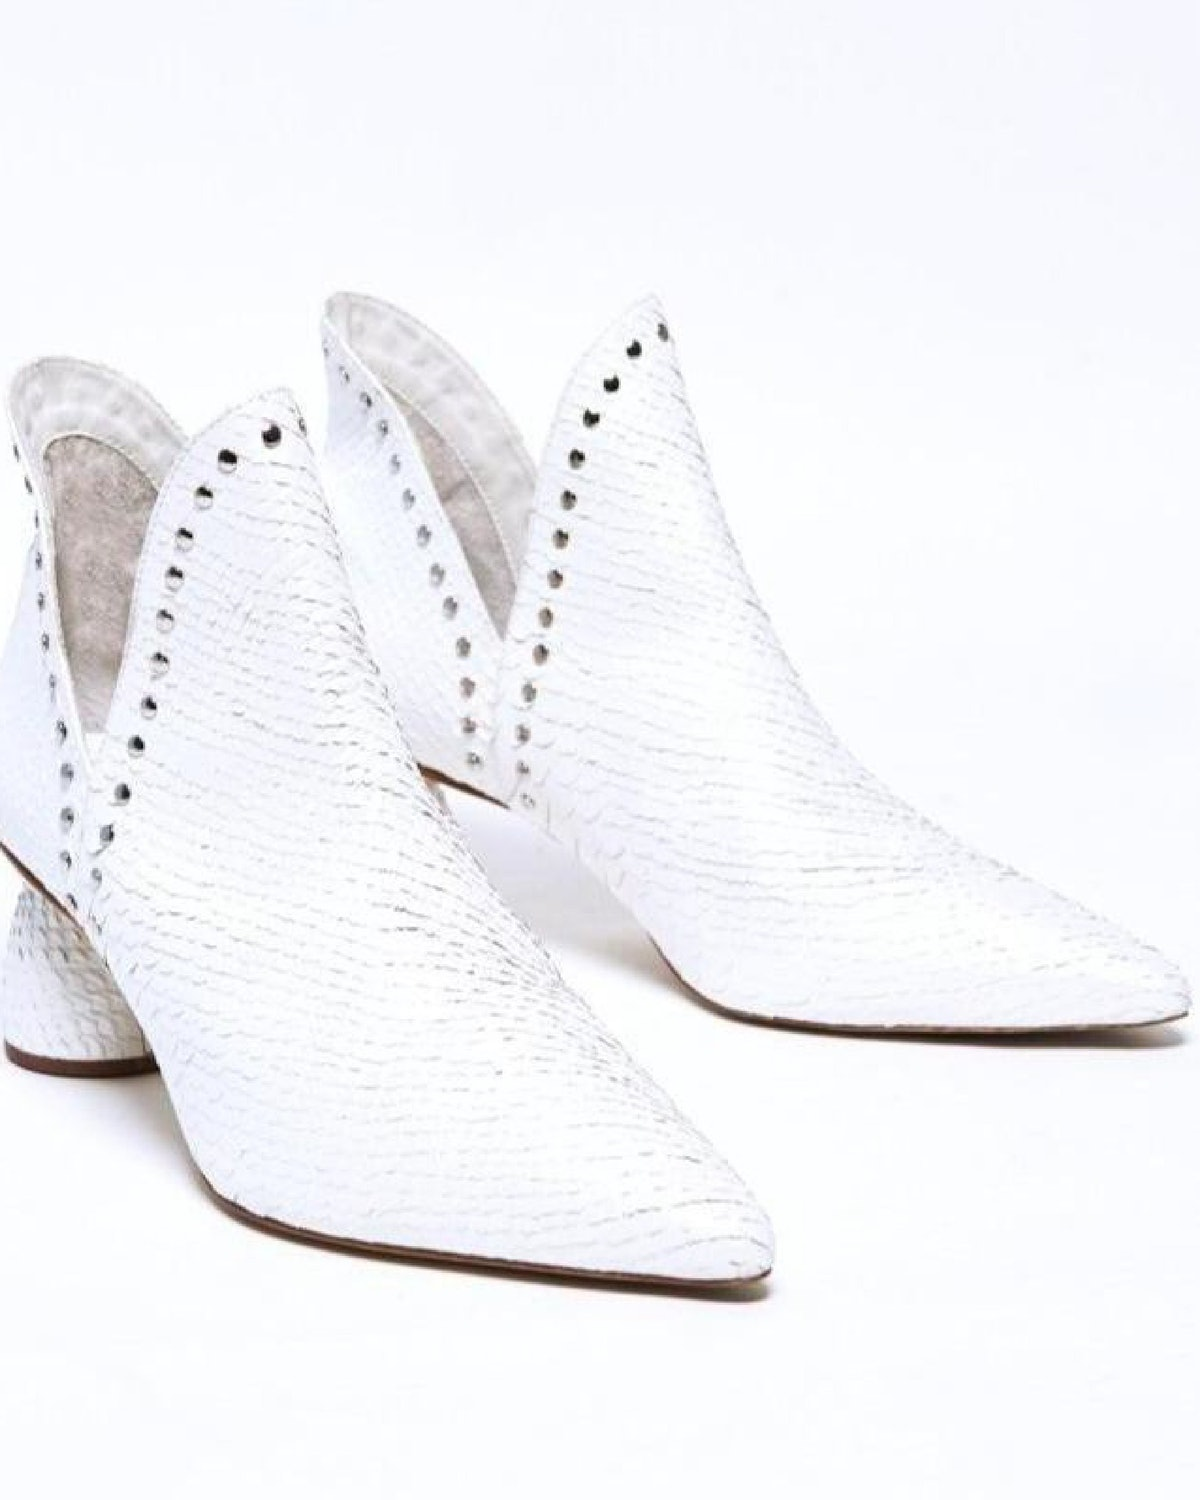 White Jane ankle boots from VICSON.